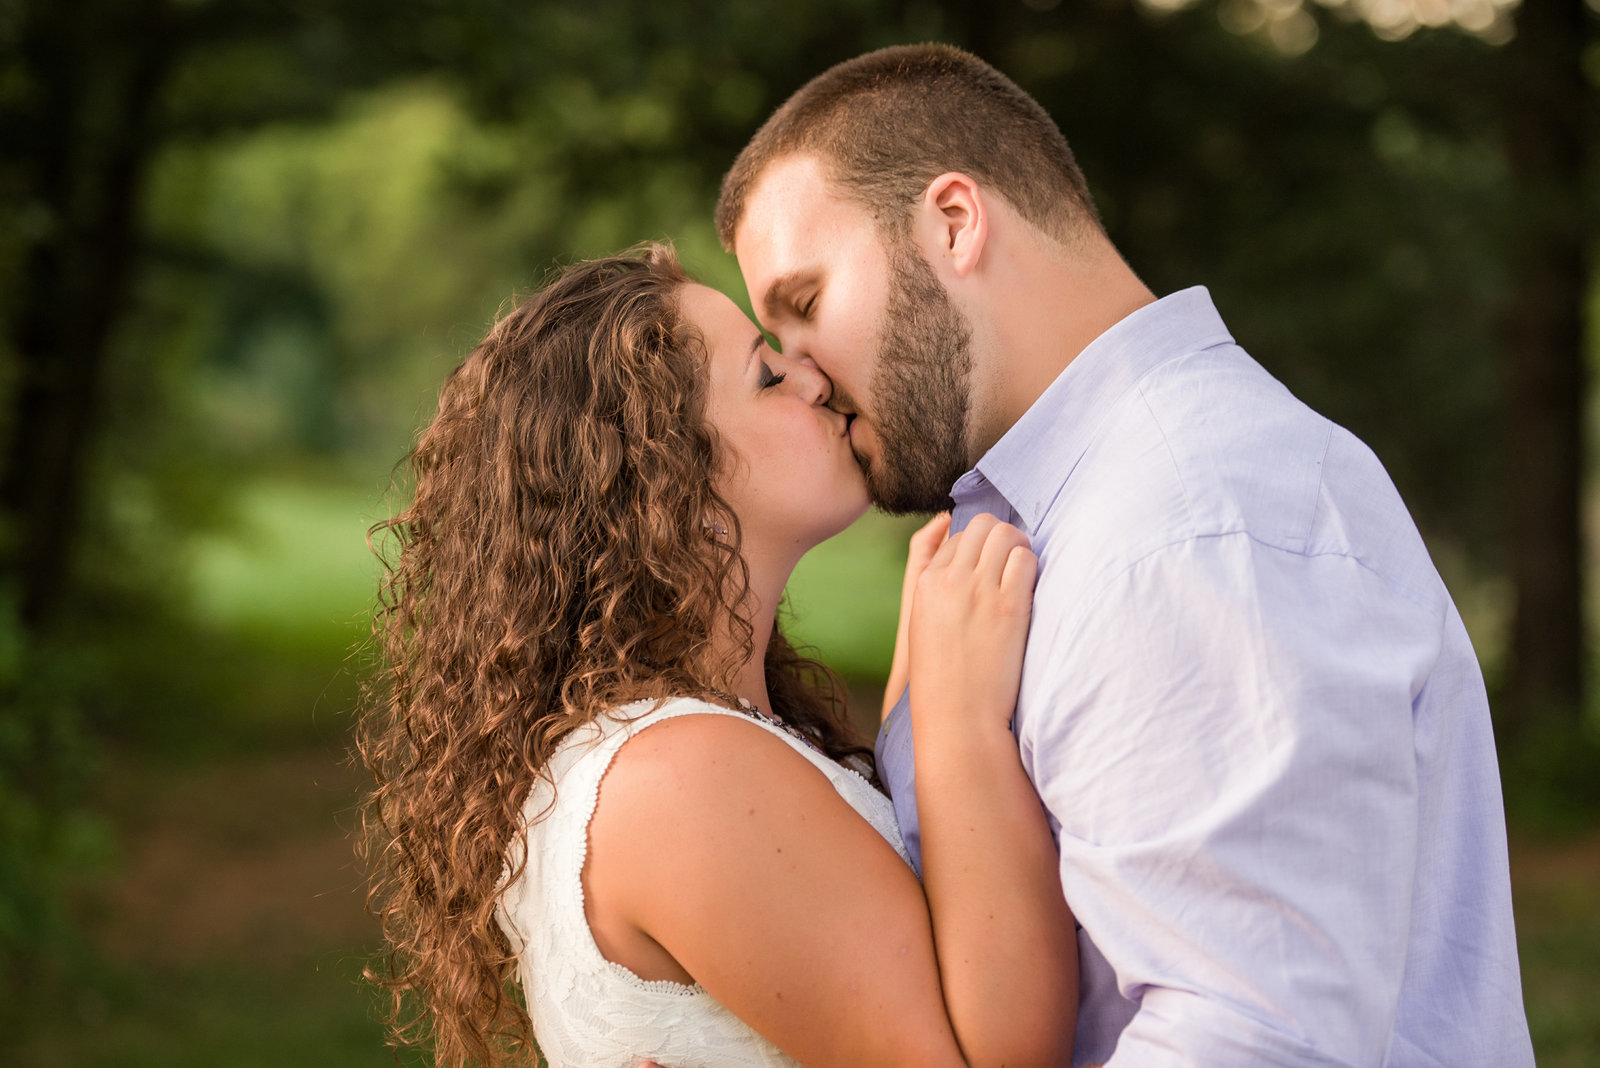 NJ_Rustic_Engagement_Photography143